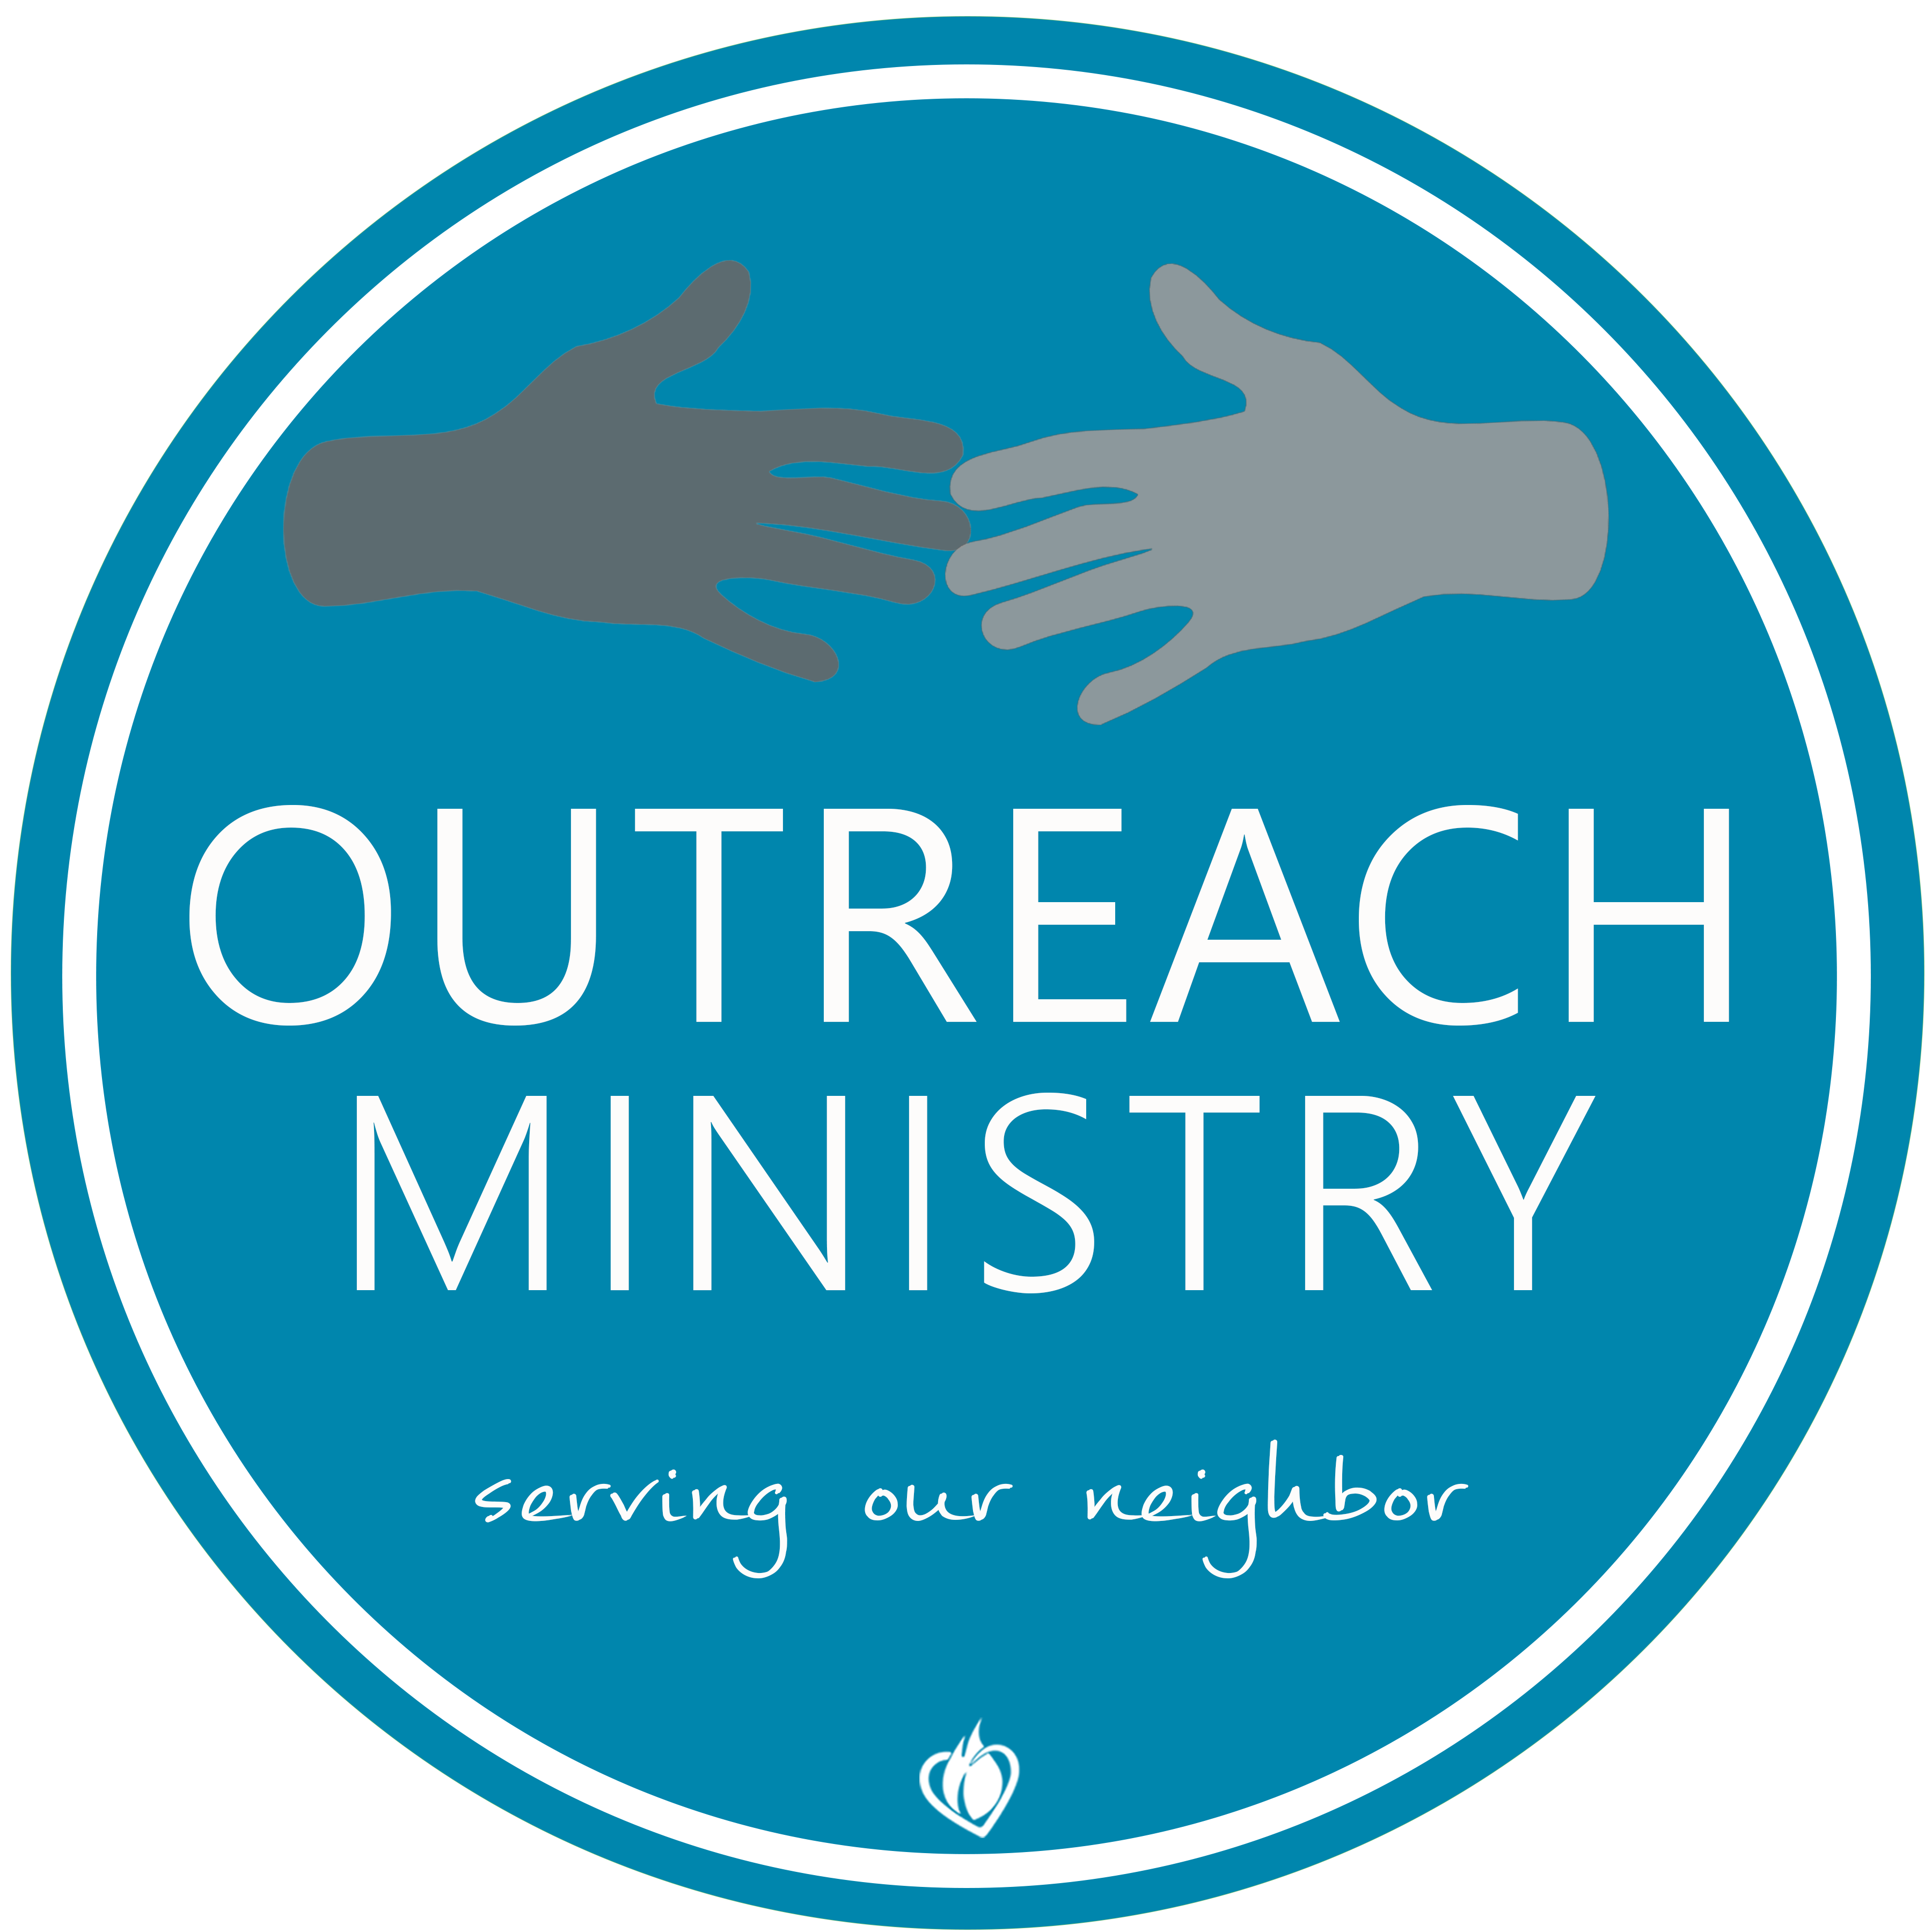 Outreach Ministry logo 2020png